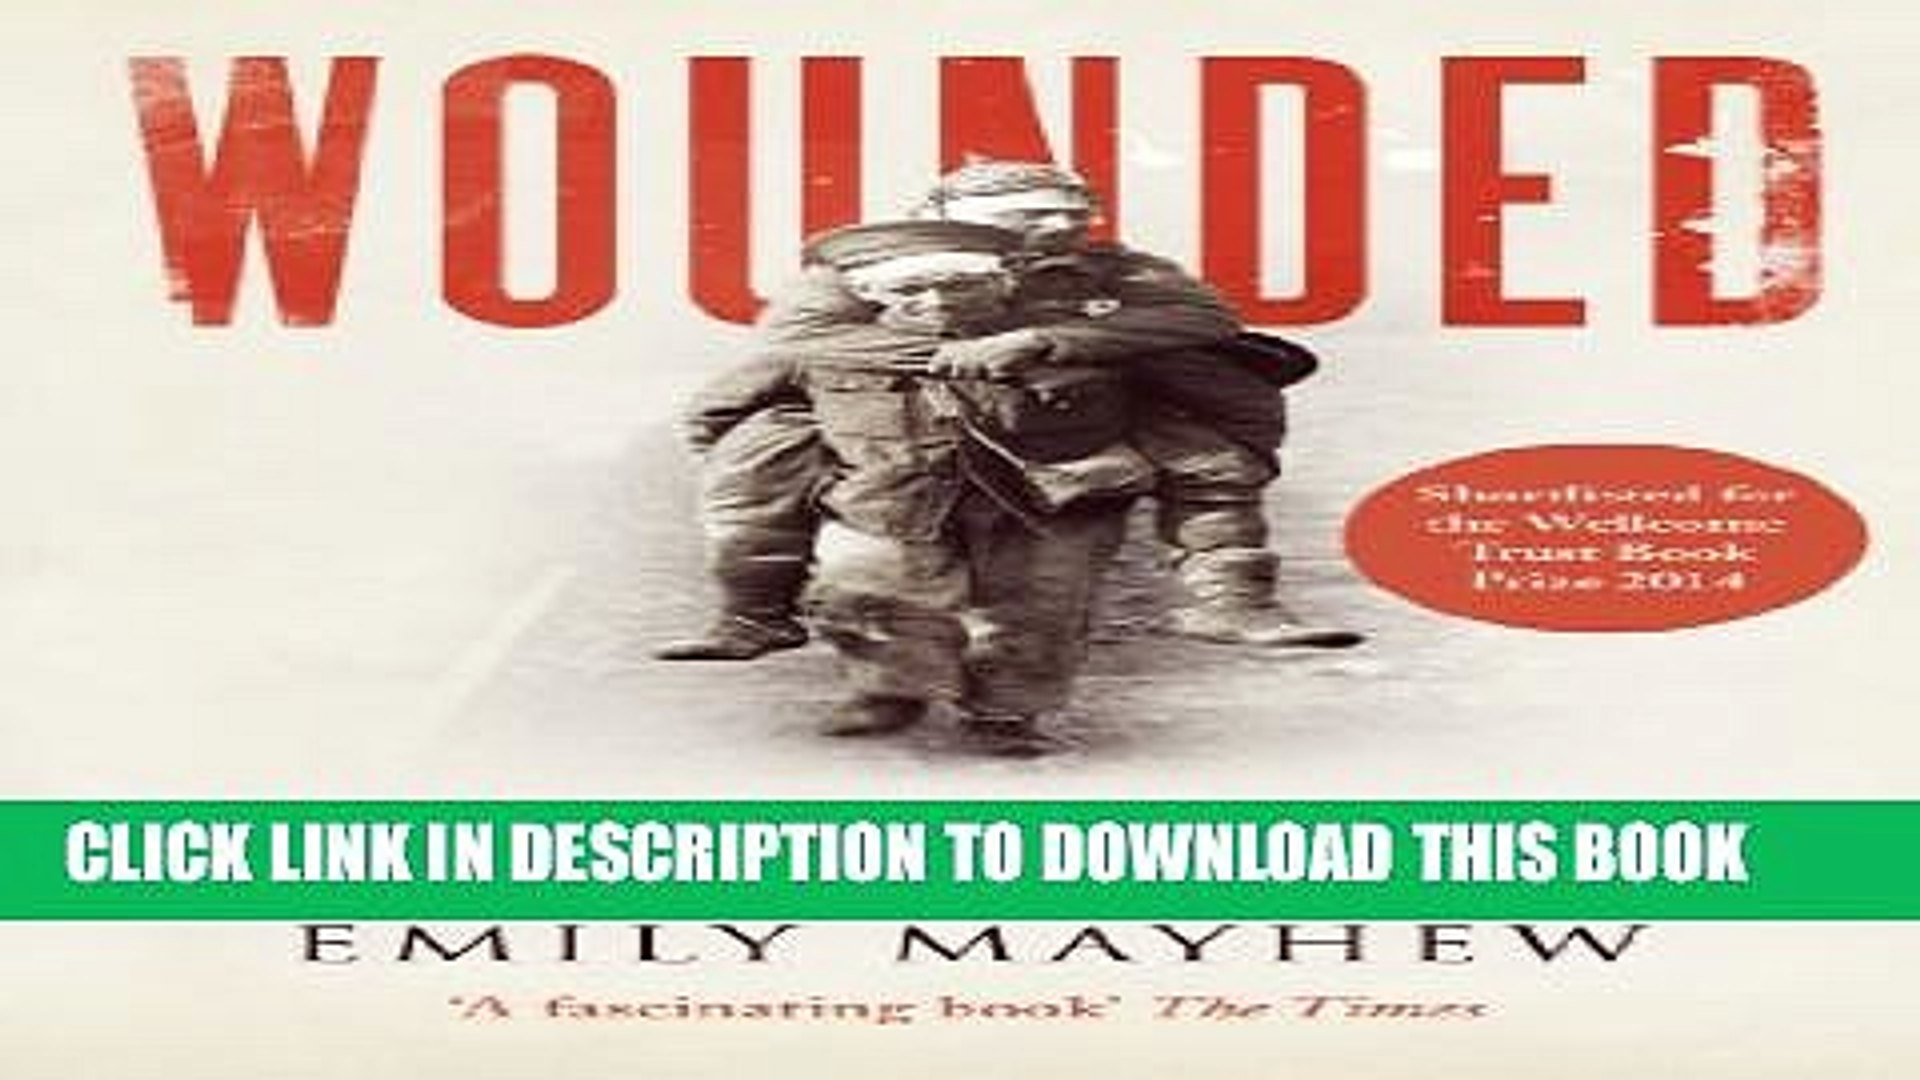 [PDF] Wounded: From Battlefield to Blighty, 1914-1918 Full Online